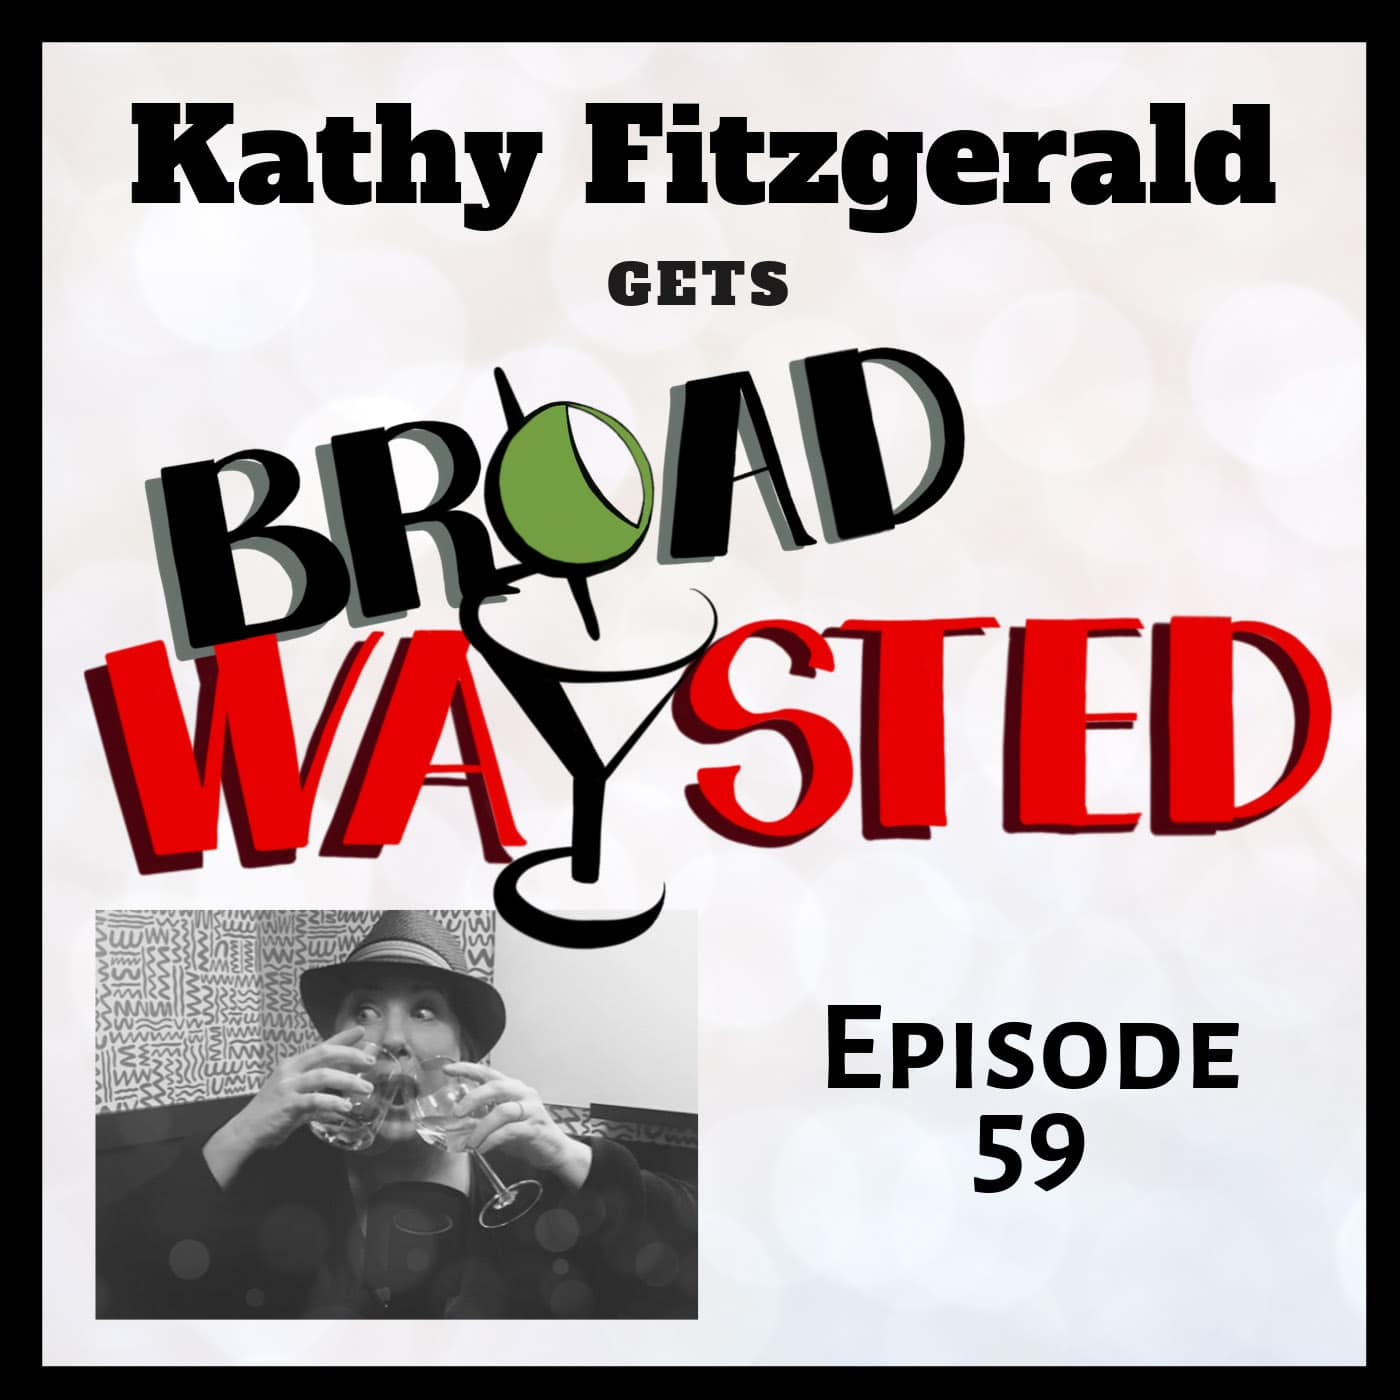 Broadwaysted Ep 59 Kathy Fitzgerald